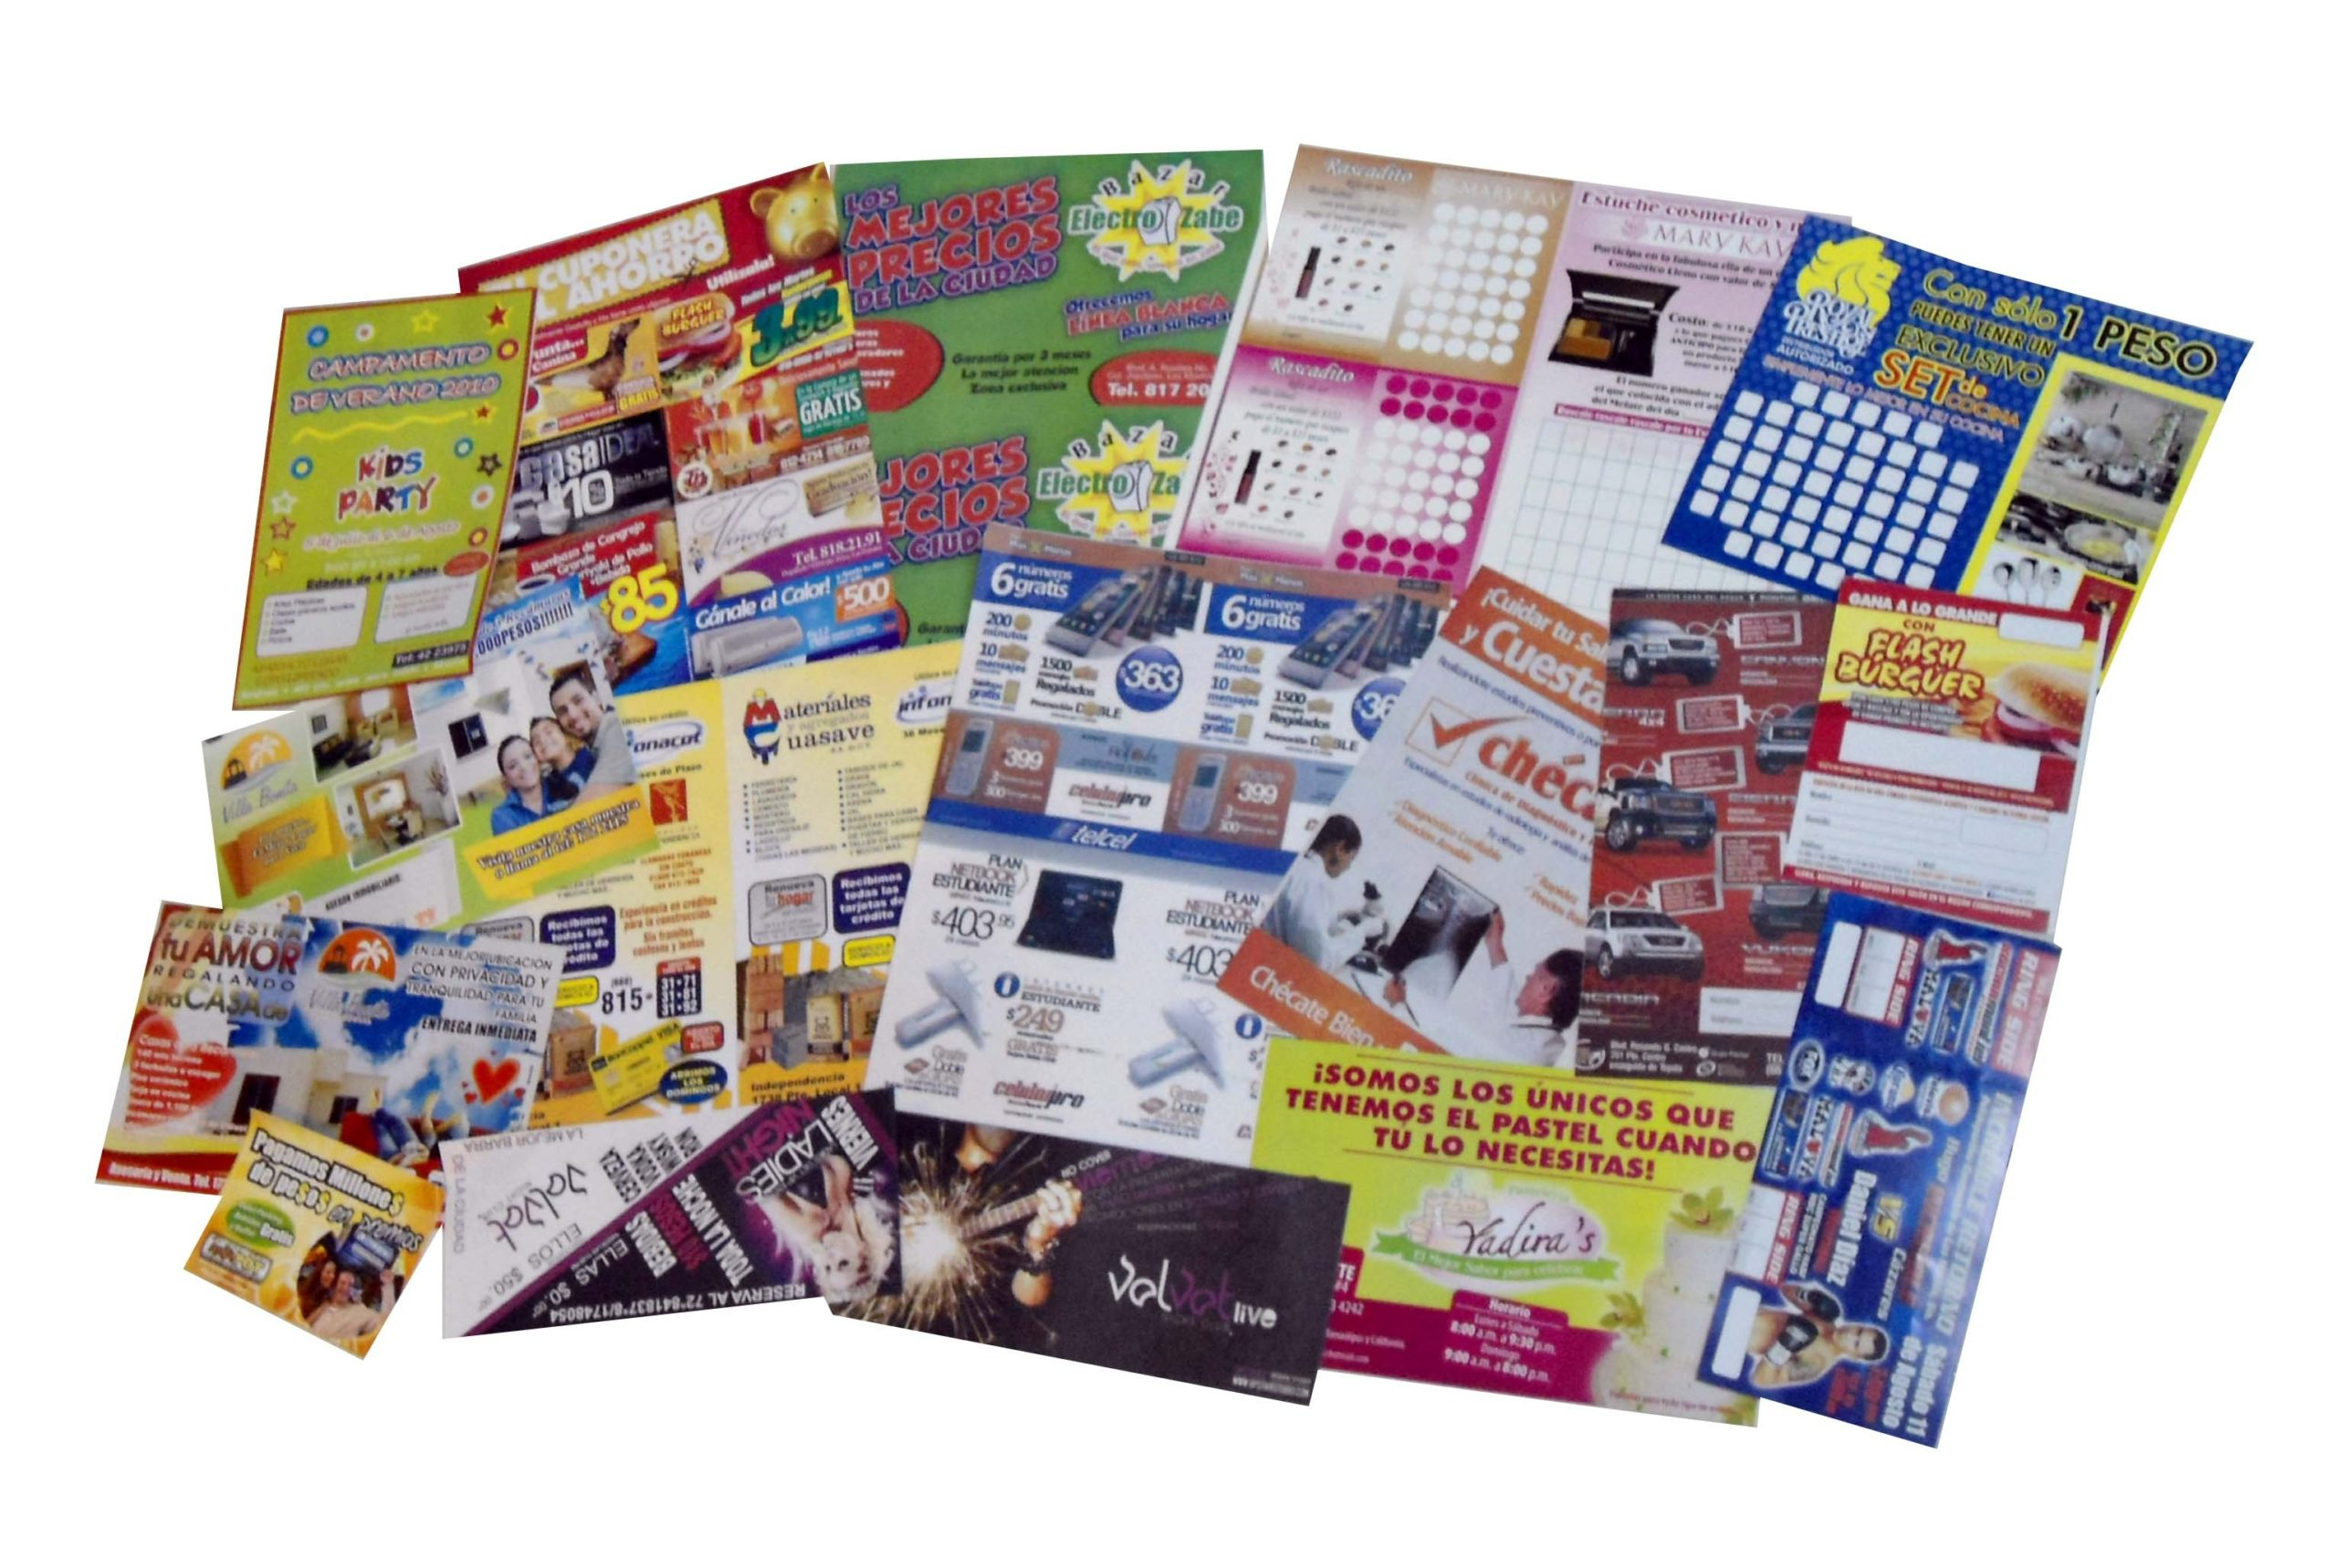 The Physical Marketing Methods Your Business Still Needs to Use